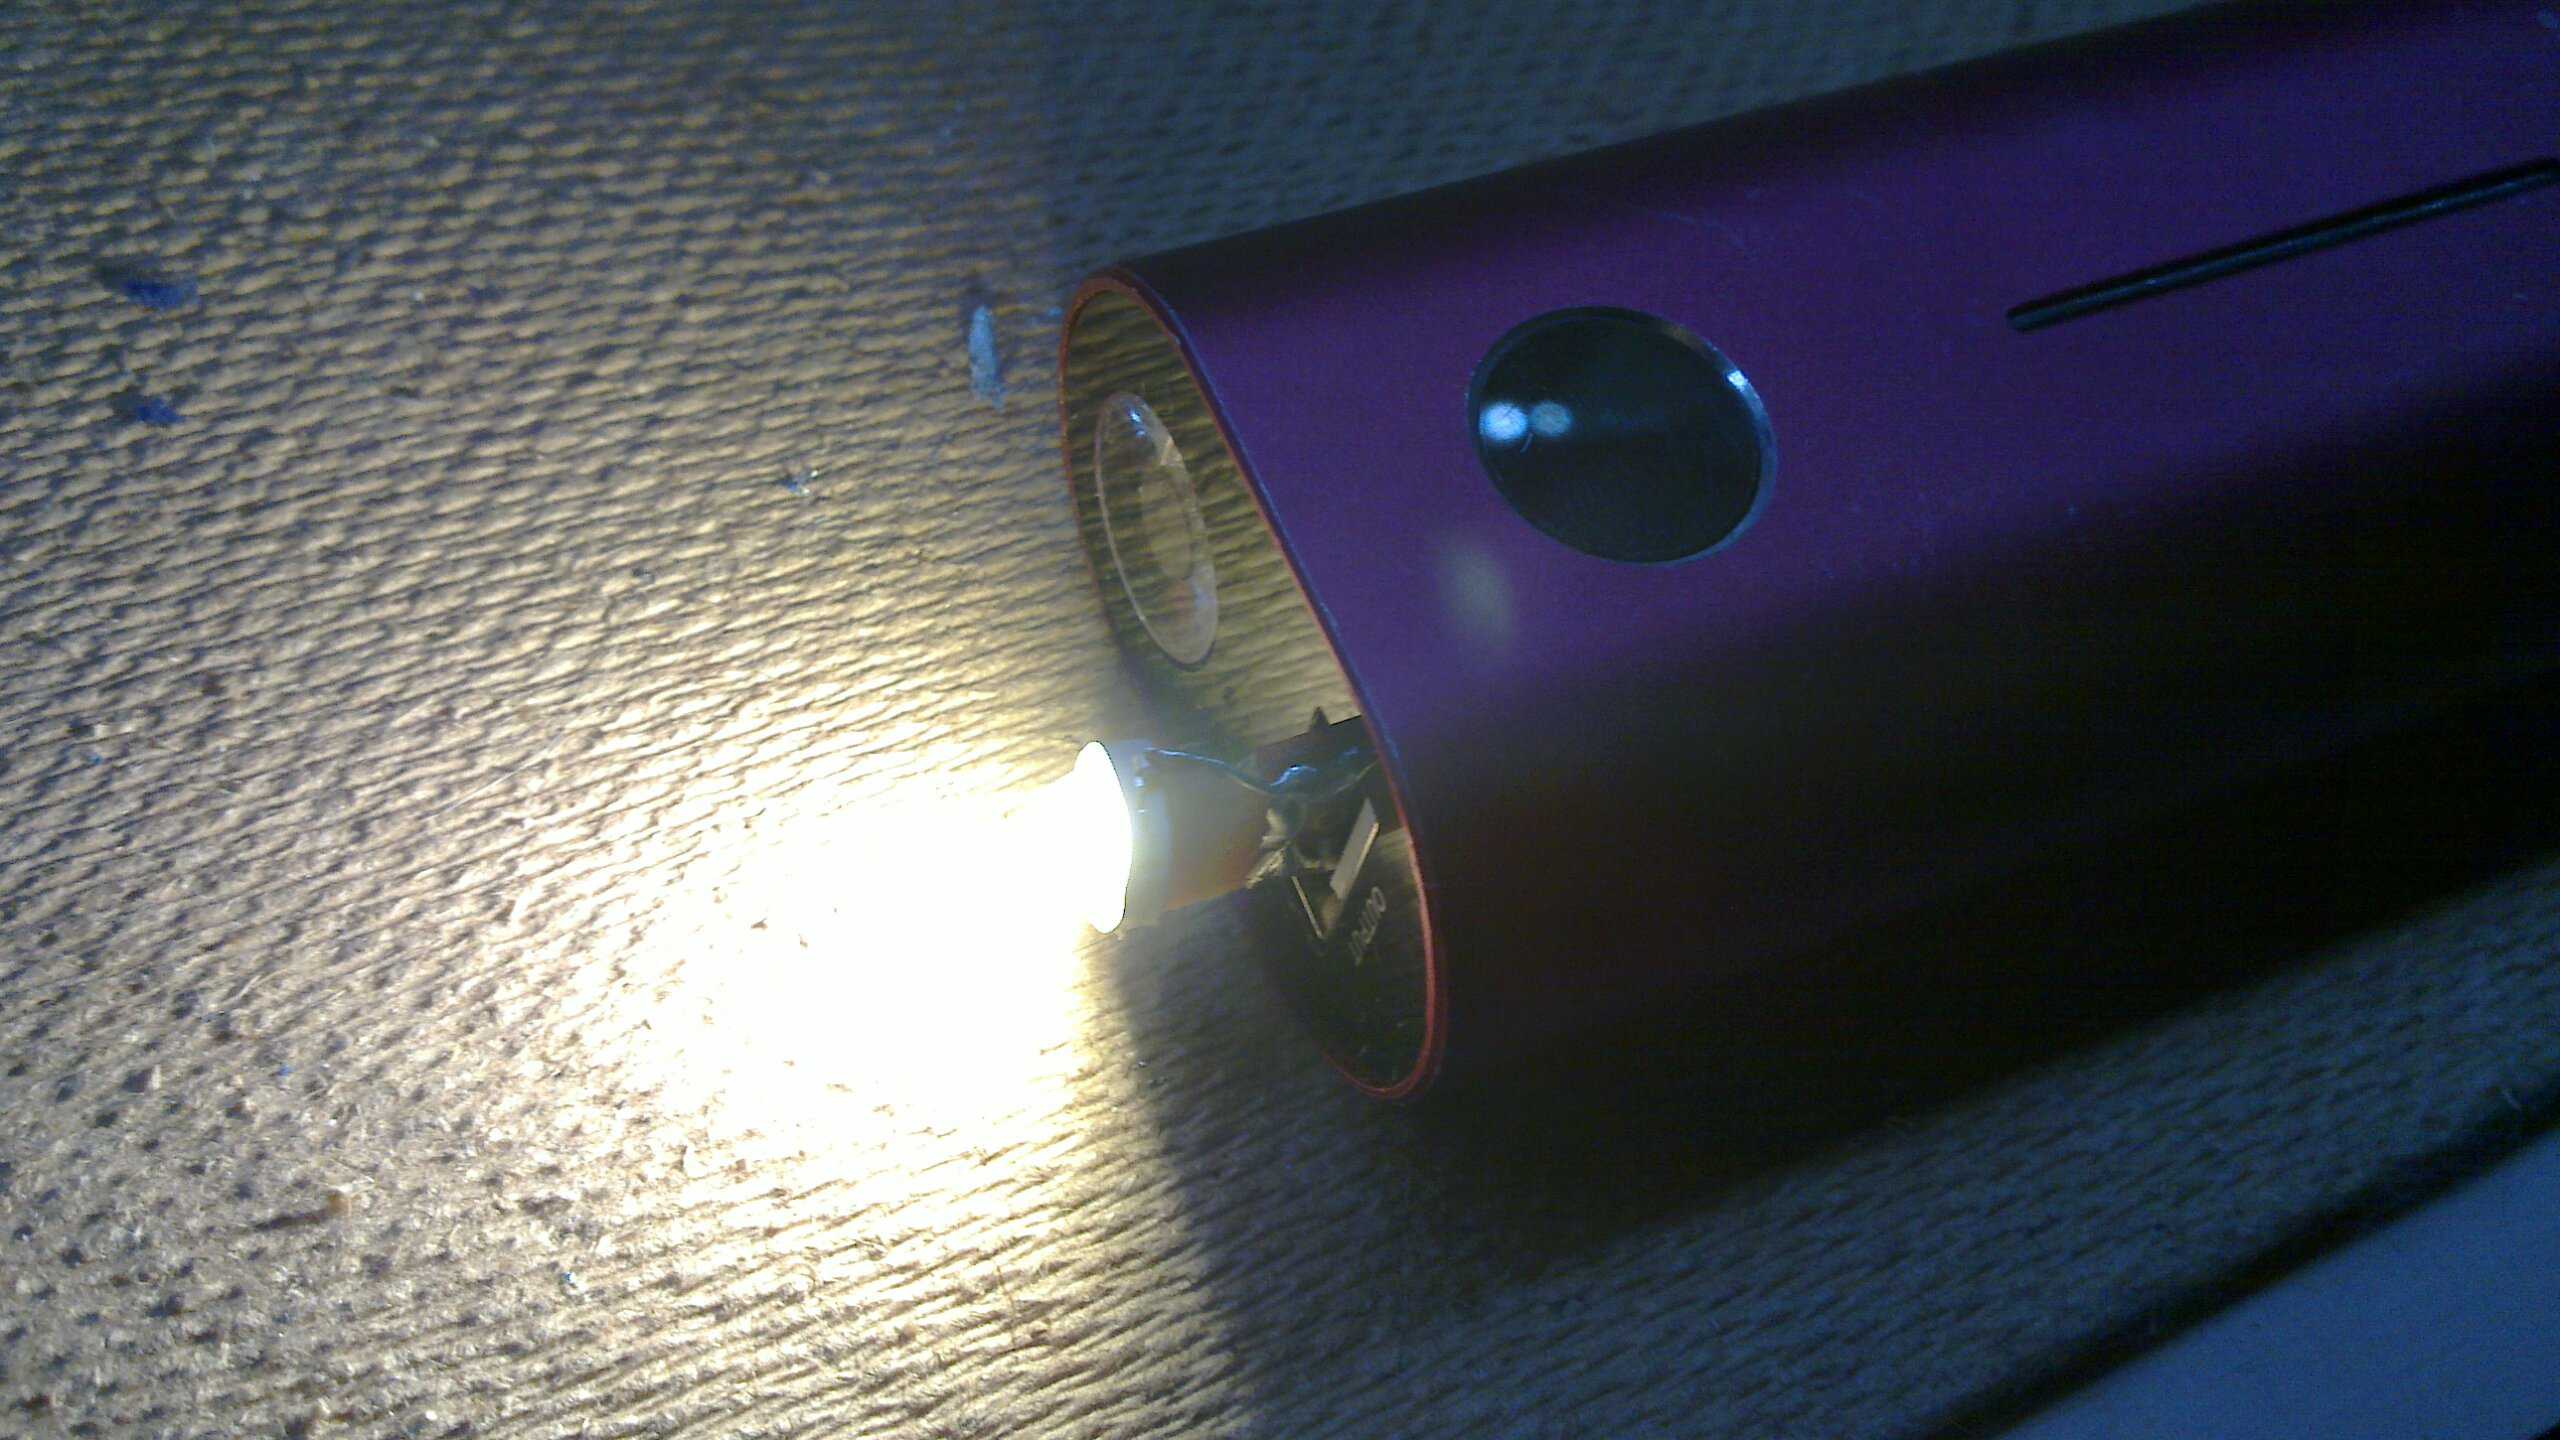 TinyUSB 1W led without testing equipment